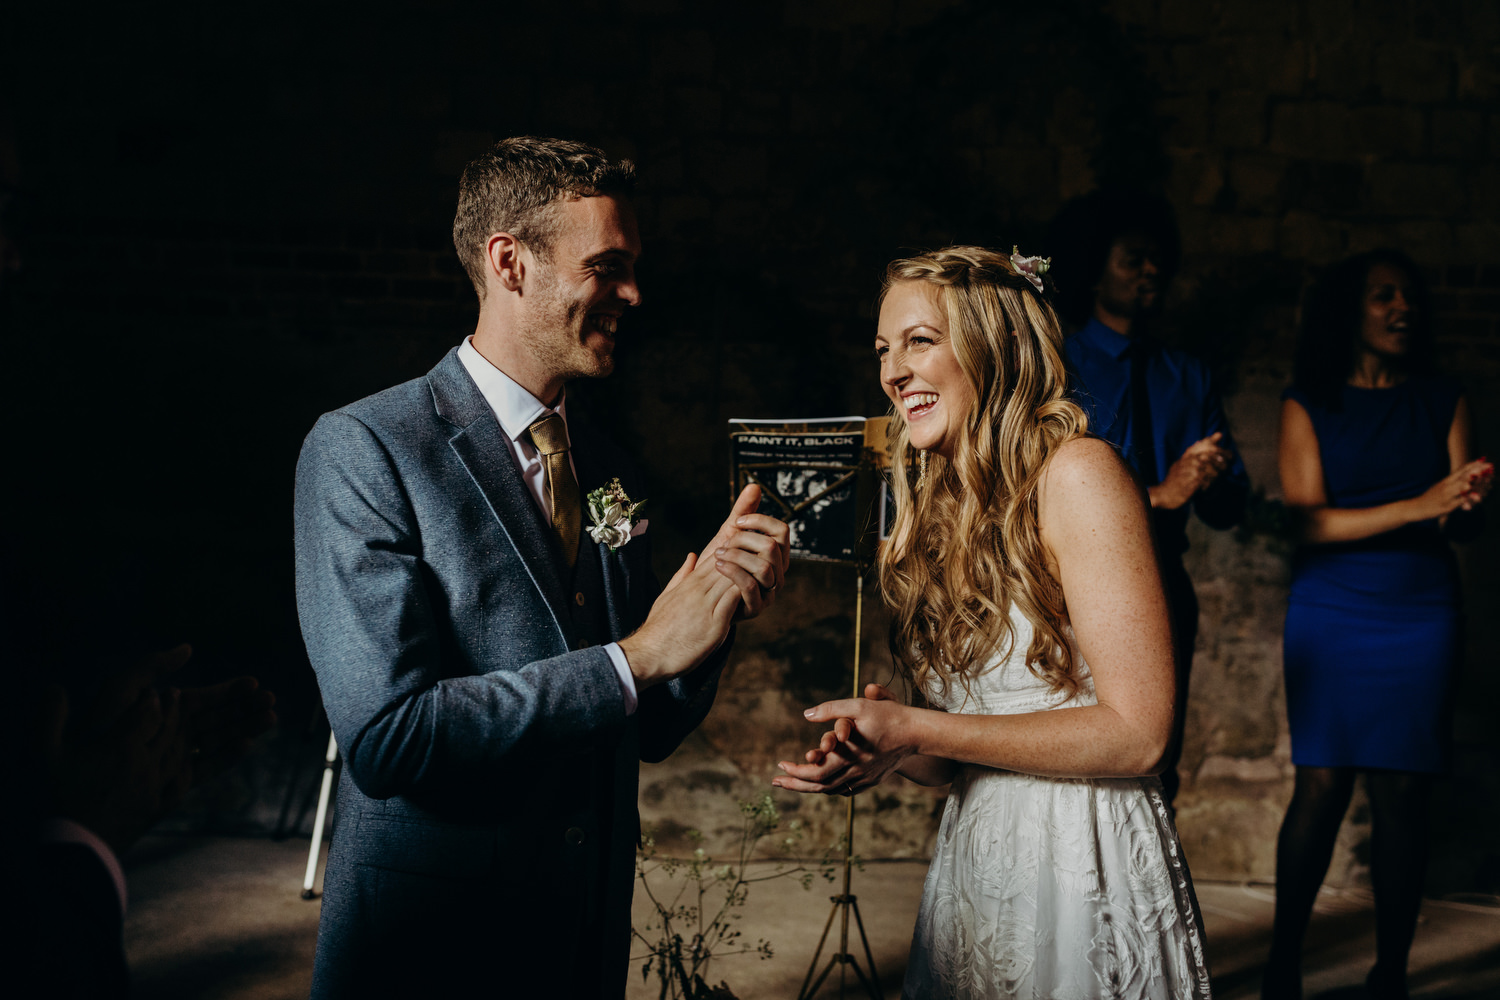 bride and groom smiling during ceremony